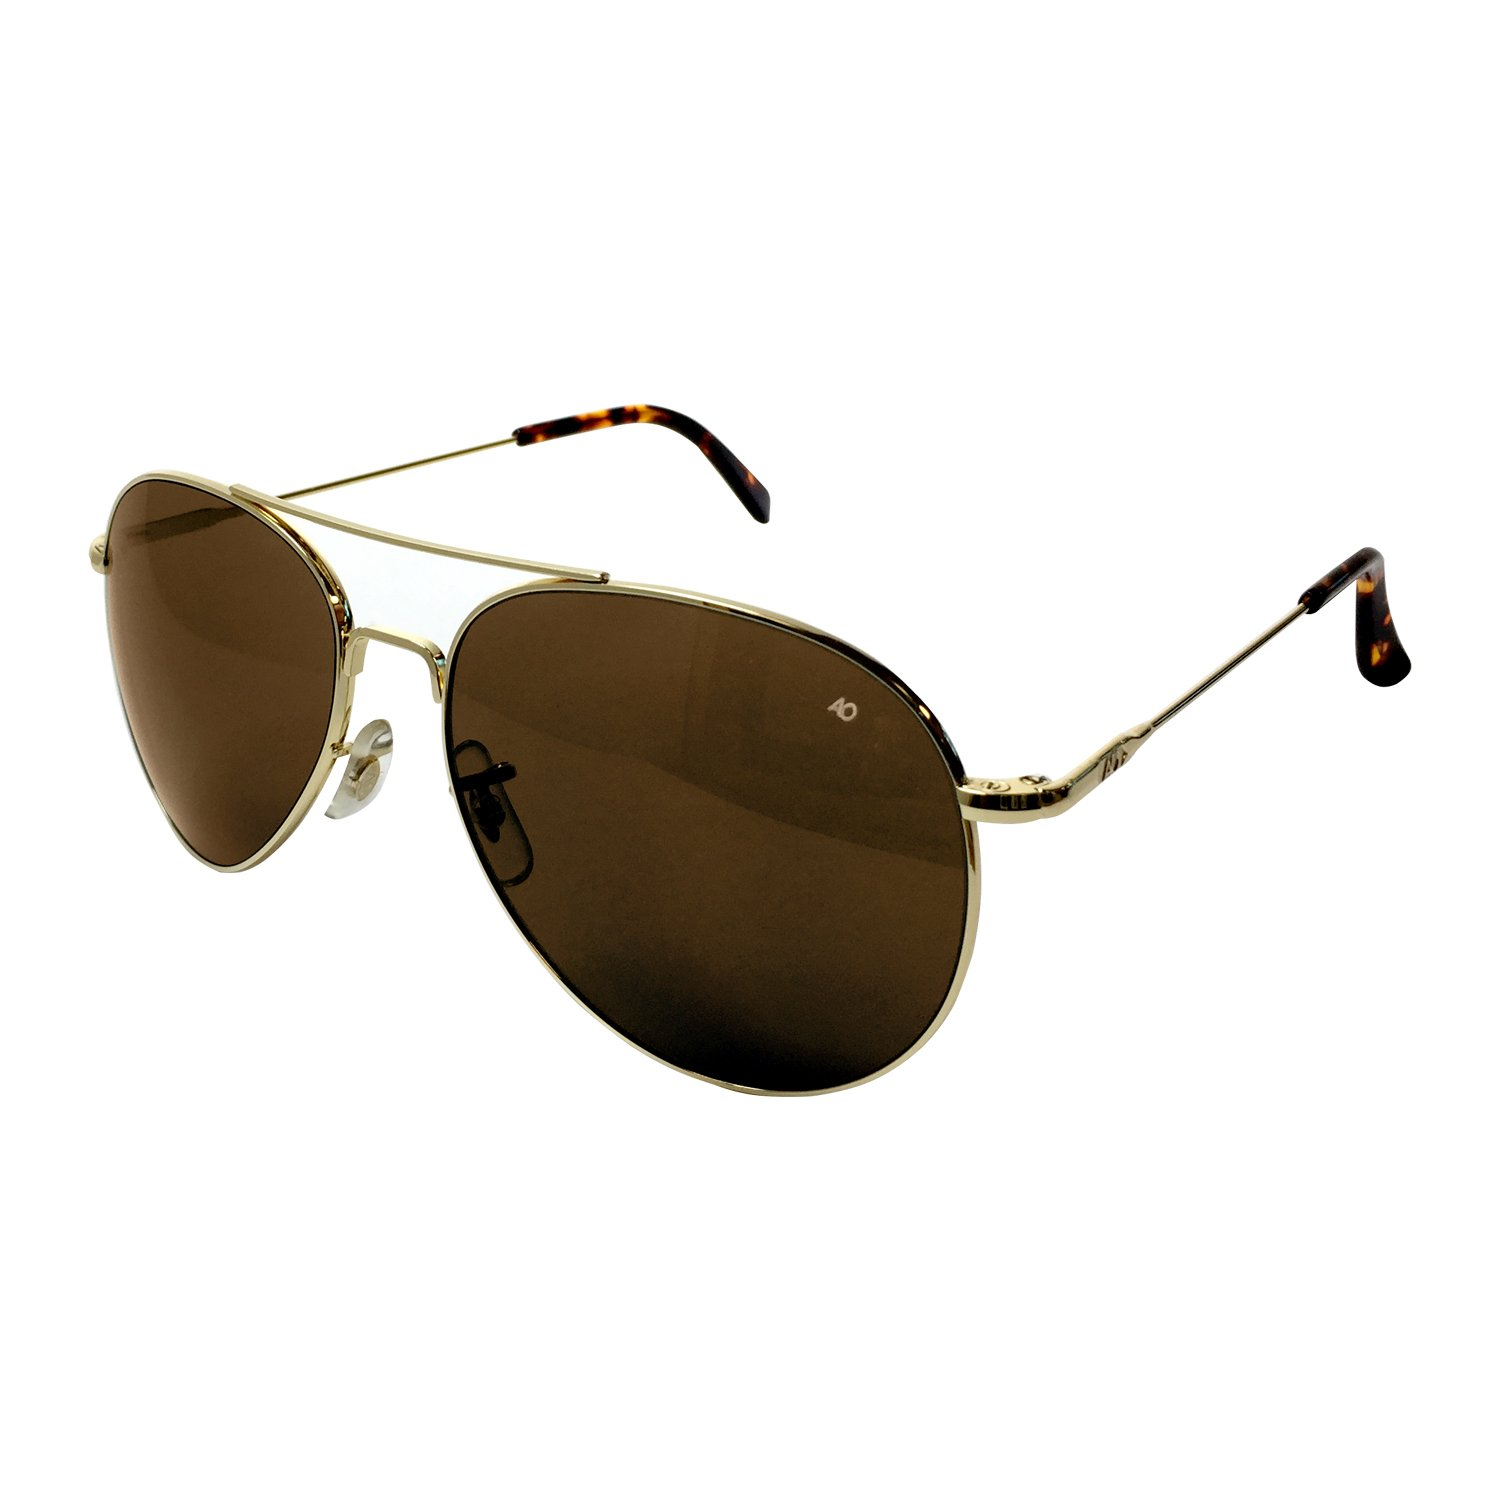 AO Eyewear American Optical - General Aviator Sunglasses with Wire Spatula Temple and Gold Frame, Cosmetan Brown Glass Lens by AO Eyewear